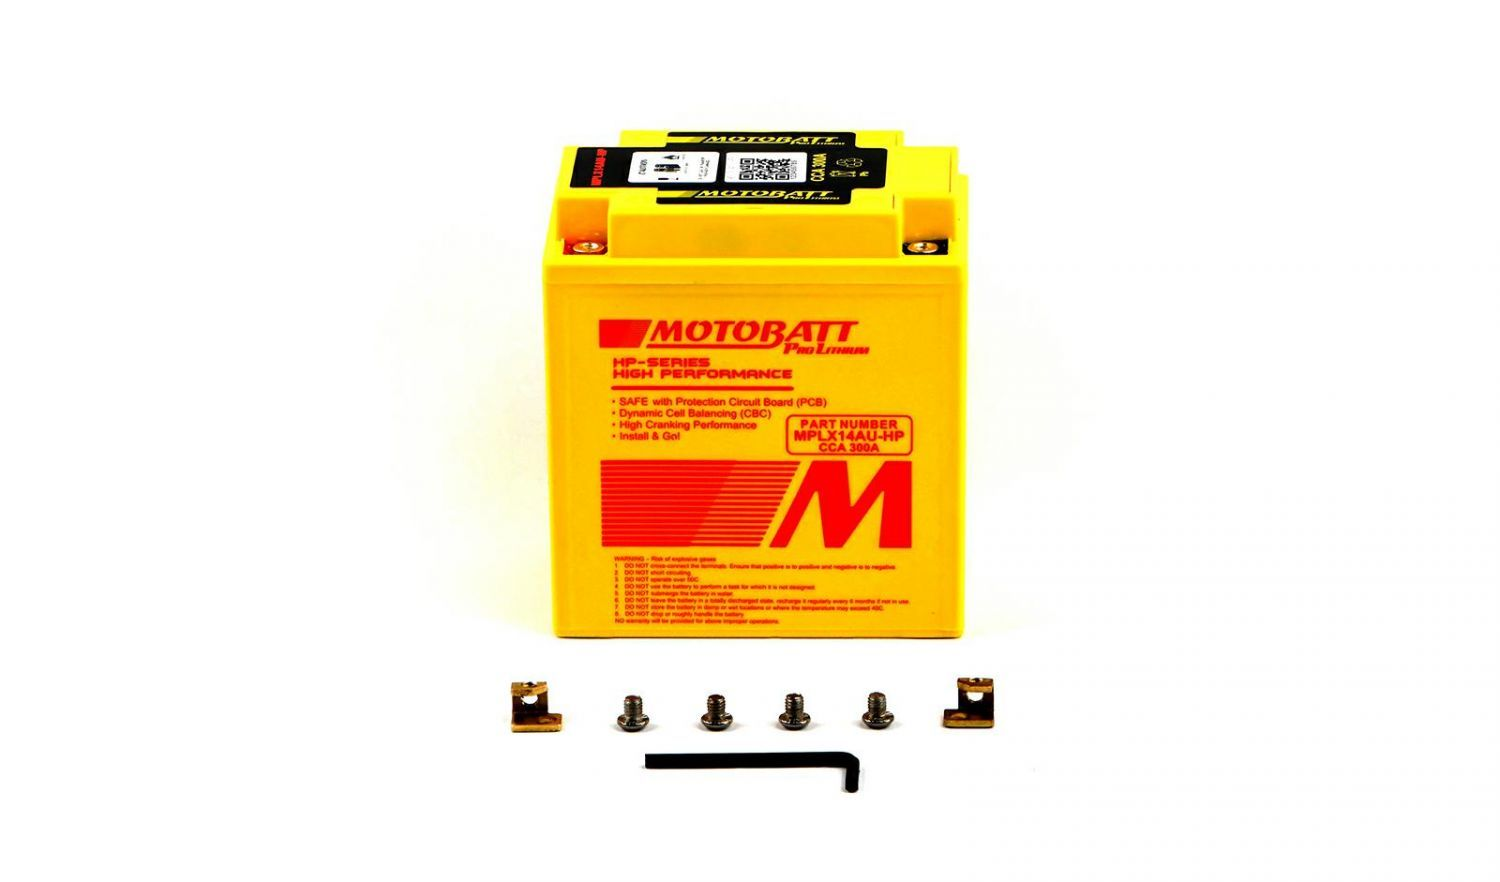 Motobatt Lithium Batteries - 501142MR image